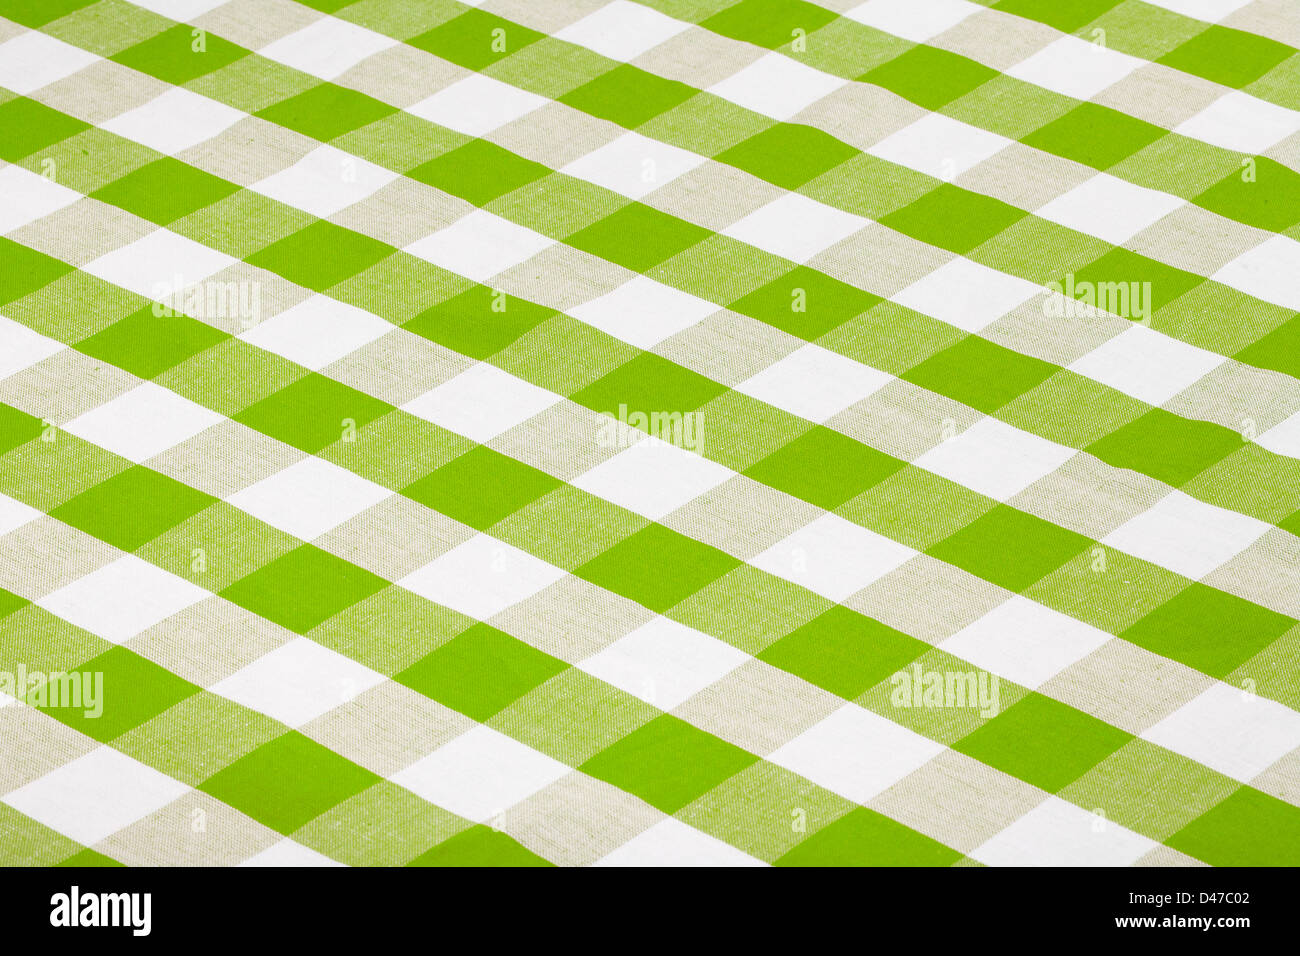 green checkered tablecloth - Stock Image